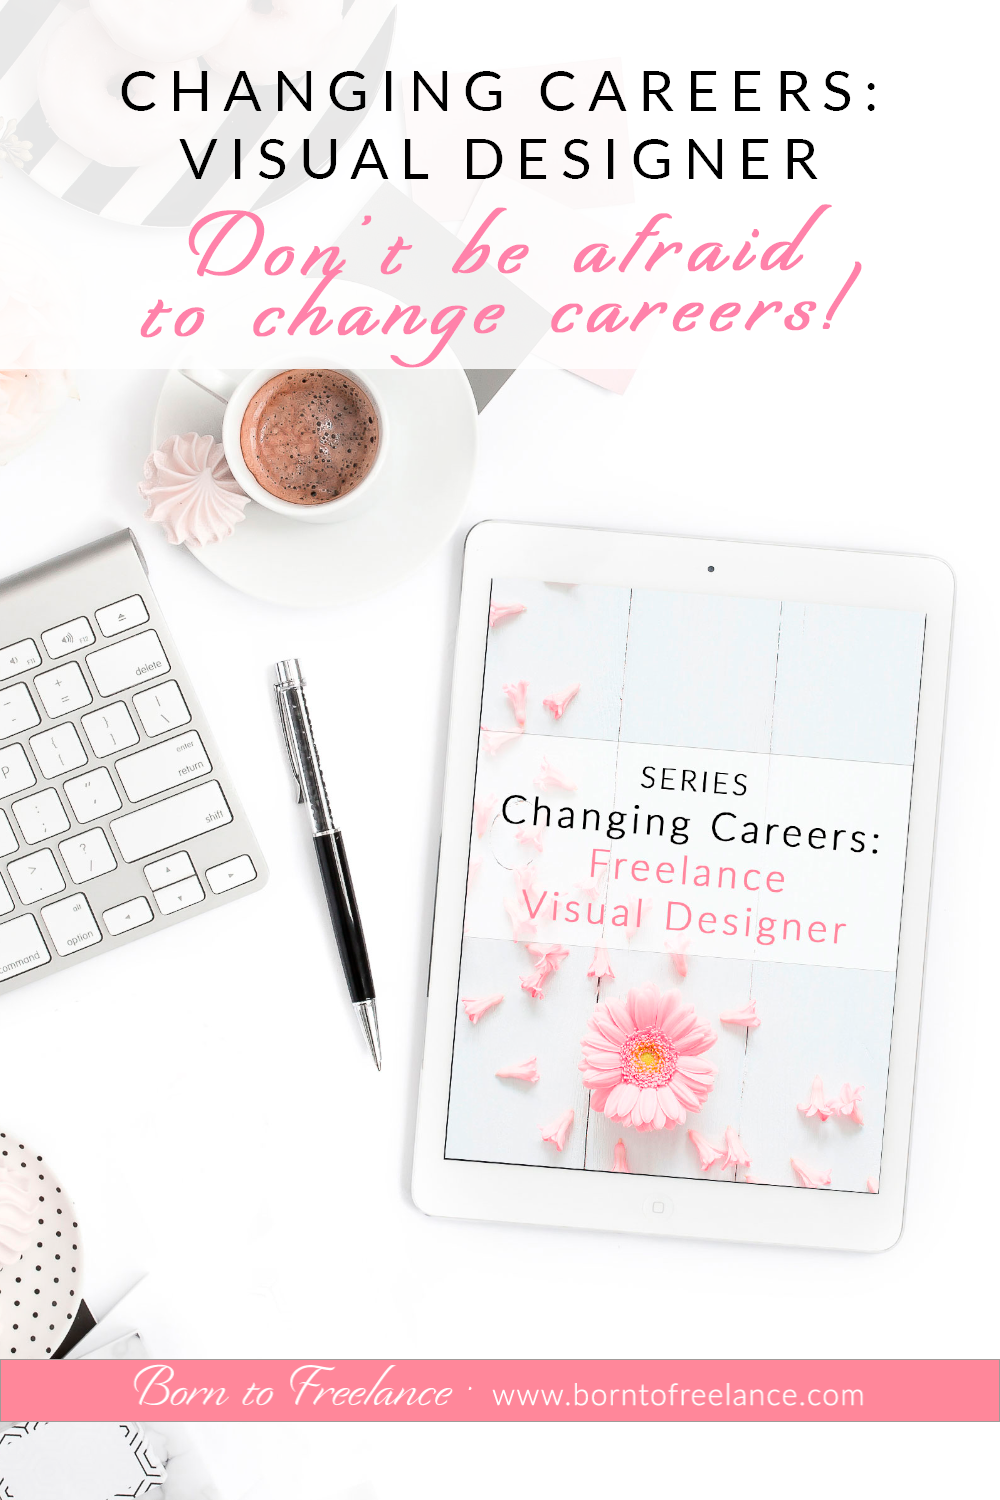 Change careers - Visual Designer